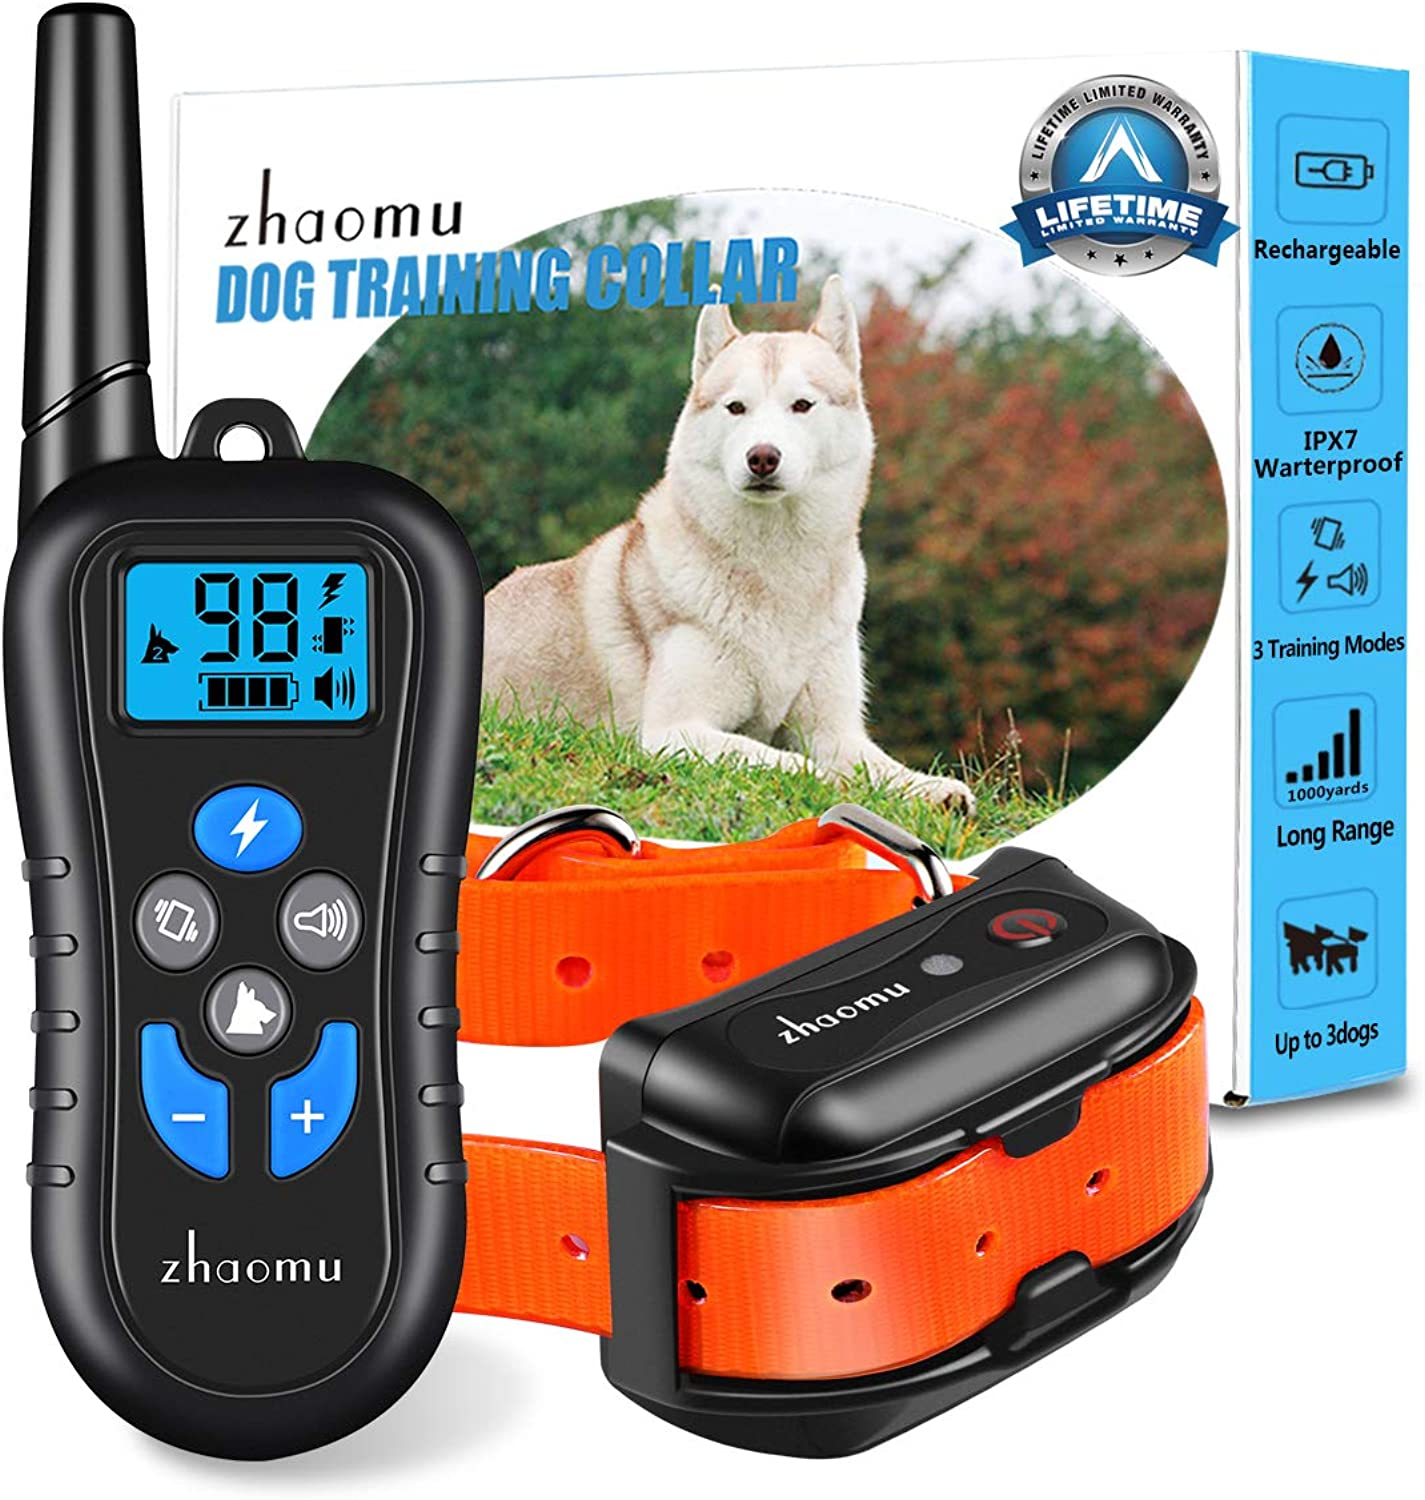 Dog Training Collar 1000 Yard Remote Range Dog Shock Collar with Tone,Vibration,Static Shock, Rechargeable ECollar 100% DEEP Waterproof Adjustable Shock Collars for Small Medium Large Dog (orange)